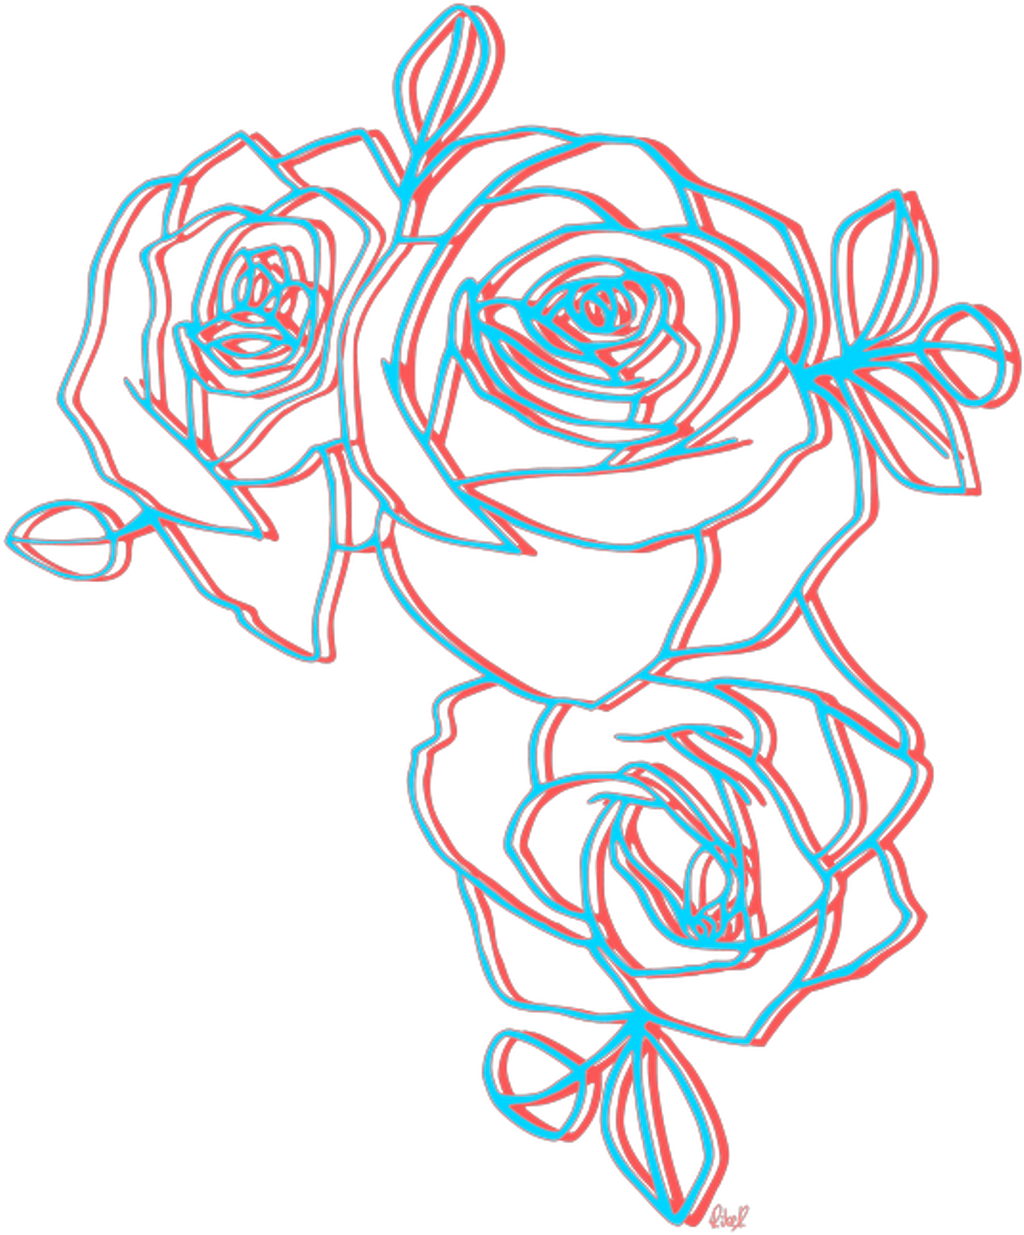 Flower Overlay Png Rose Tumblr Download Free Clipart With A Transparent Aesthetic Rose Drawing 121521 Vippng